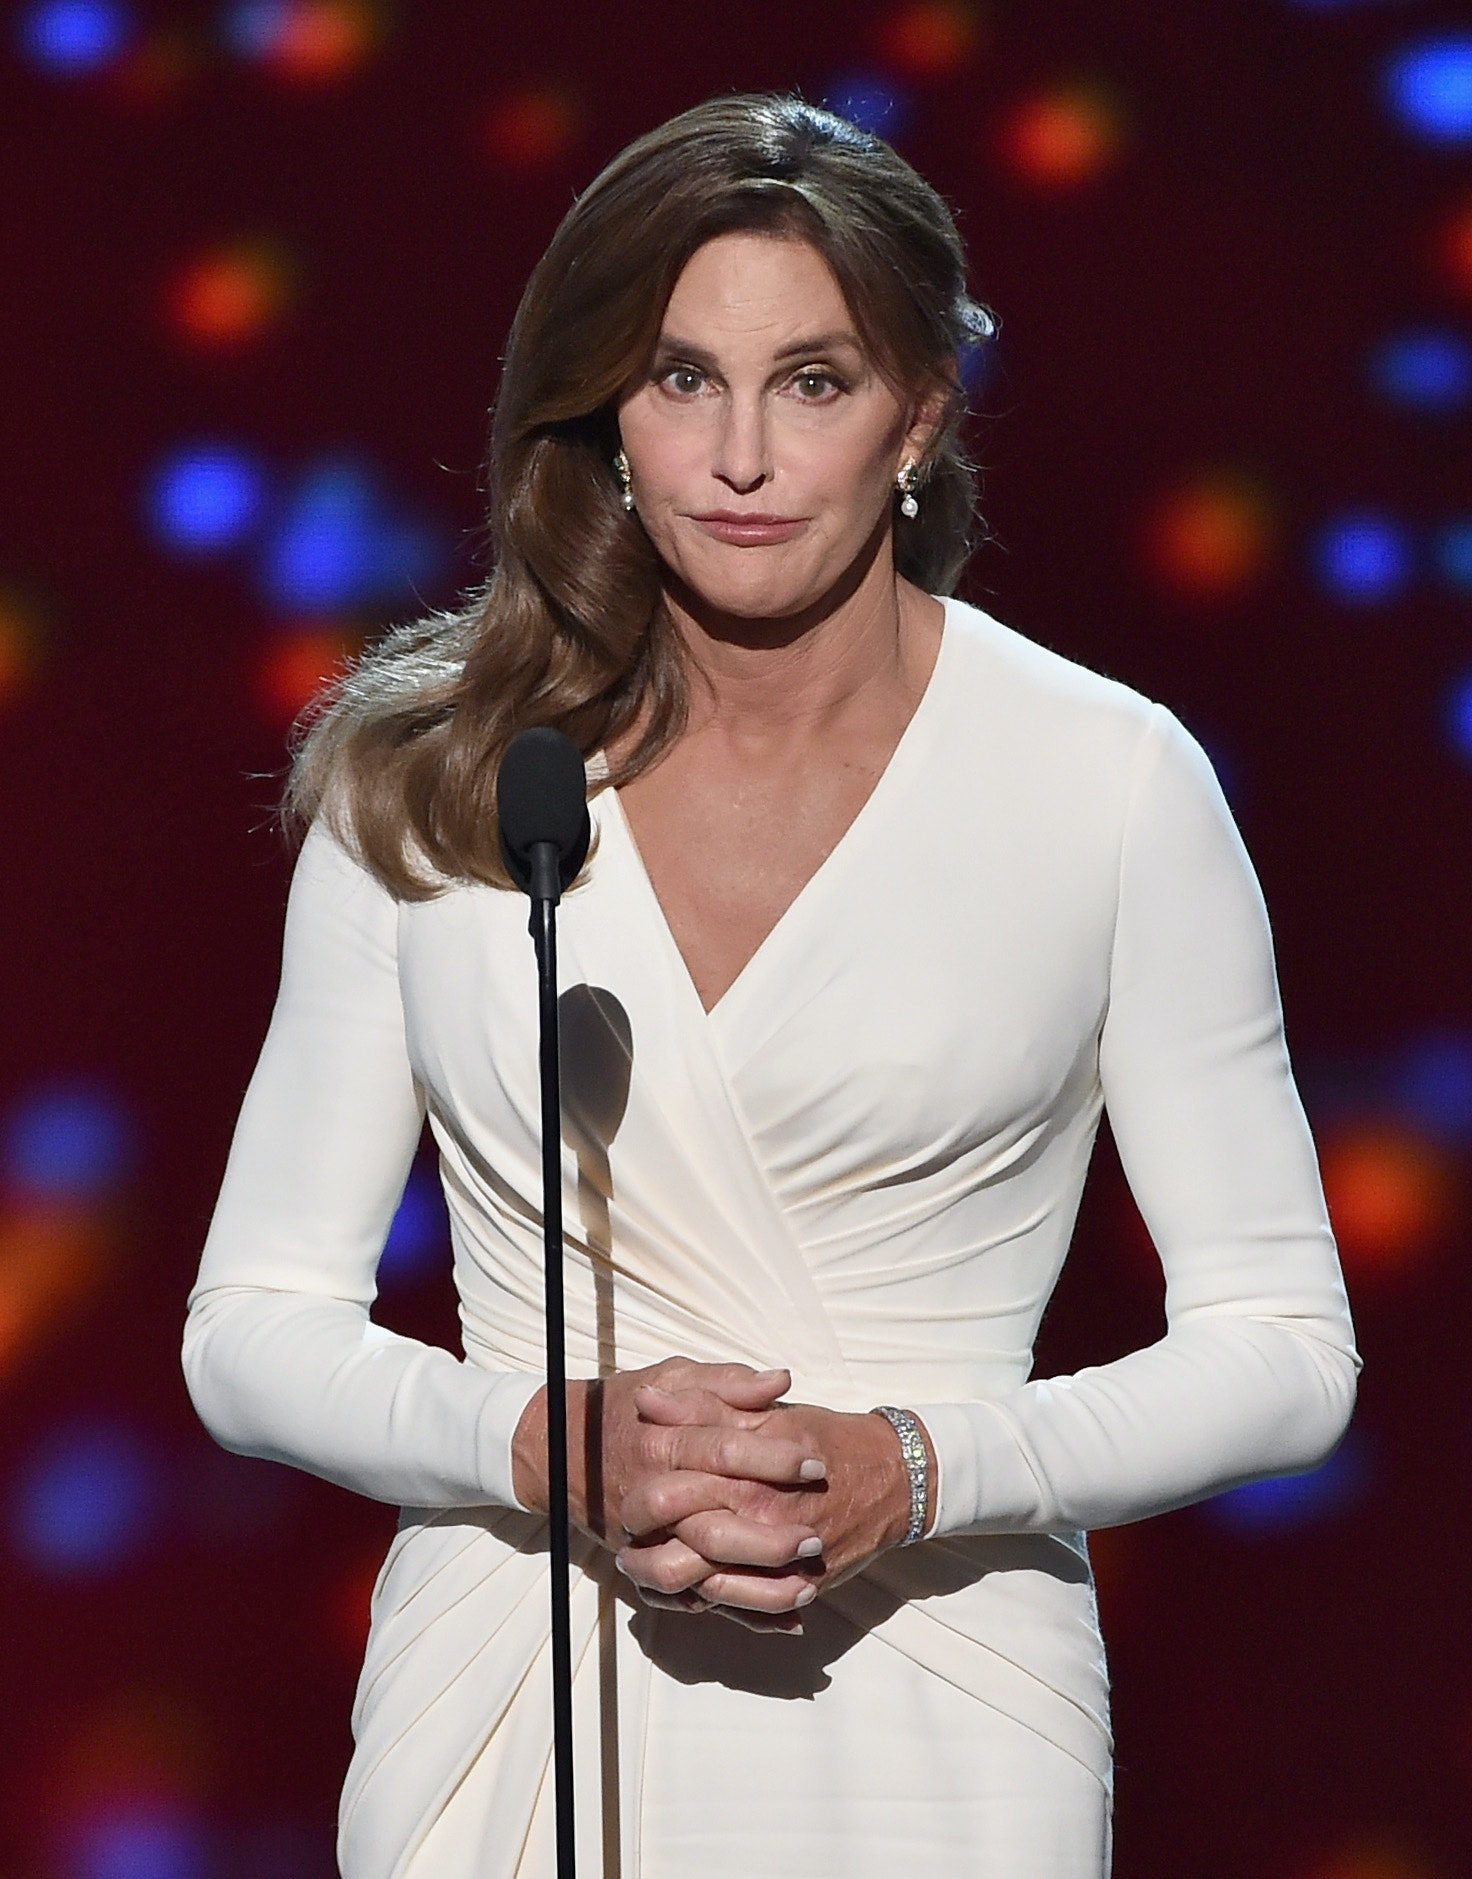 A Caitlyn Jenner Halloween Costume Is Not Funny, It's Offensive ...